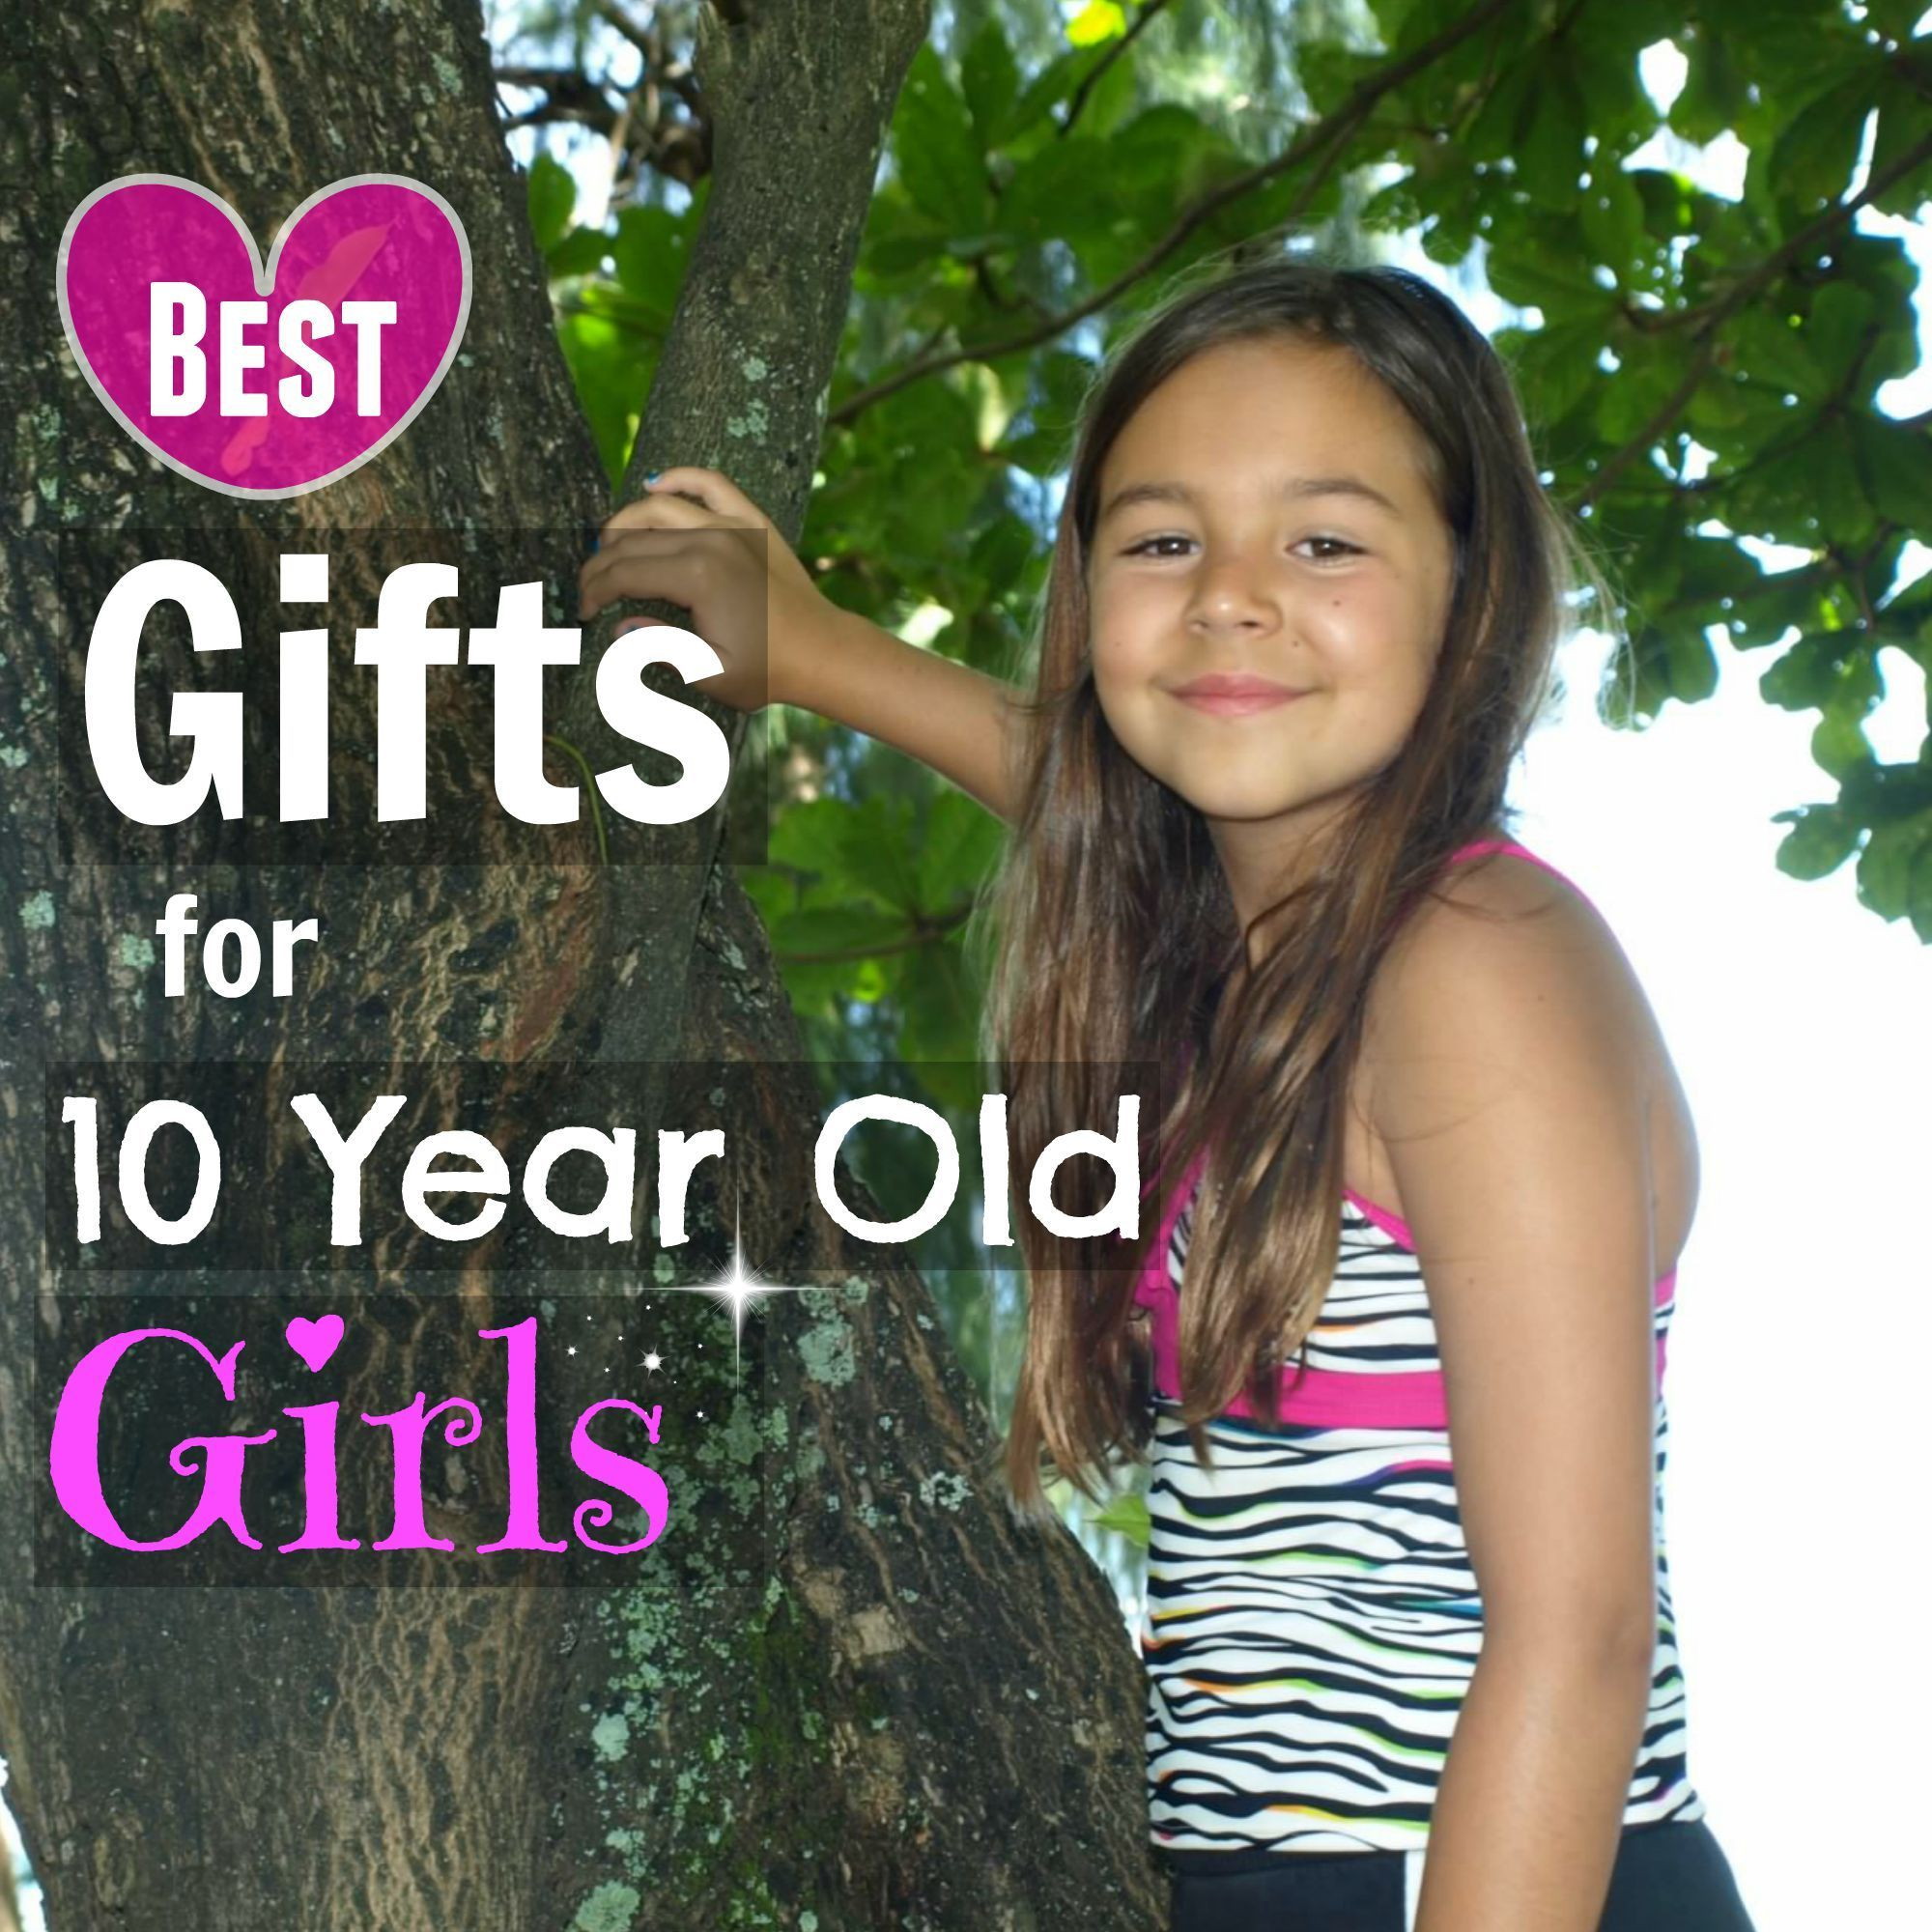 25+ Best Gifts for 10 Year Old Girls You Wouldn't Have